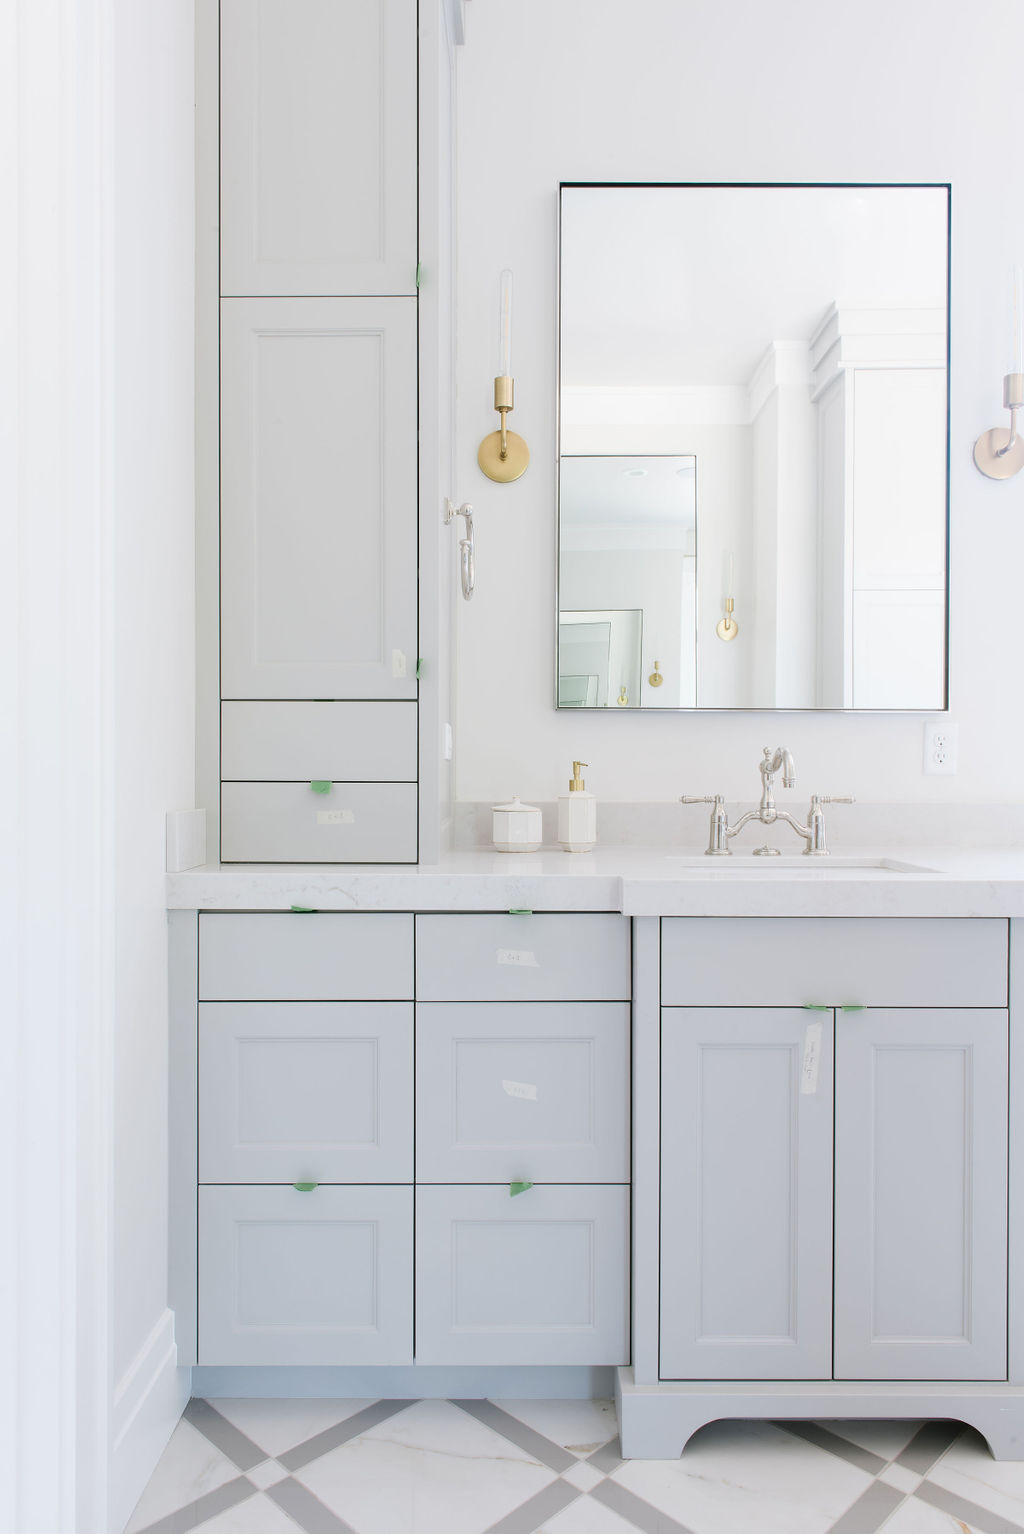 MASTER BATHROOM SINK CABINETS